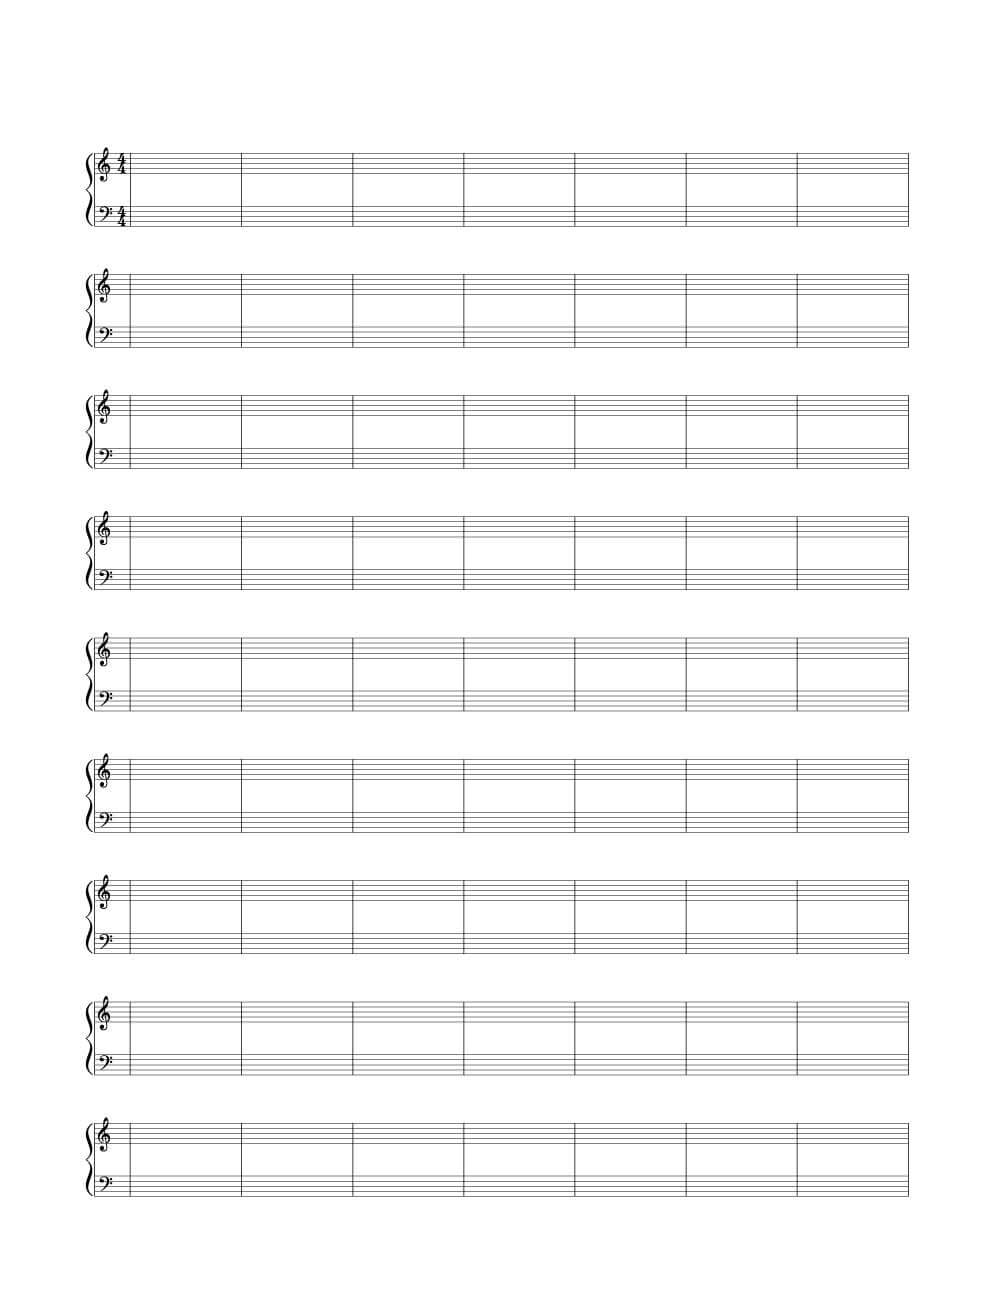 4/4 Time Signature Double Bar Blank Sheet Music | Woo! Jr Intended For Blank Sheet Music Template For Word